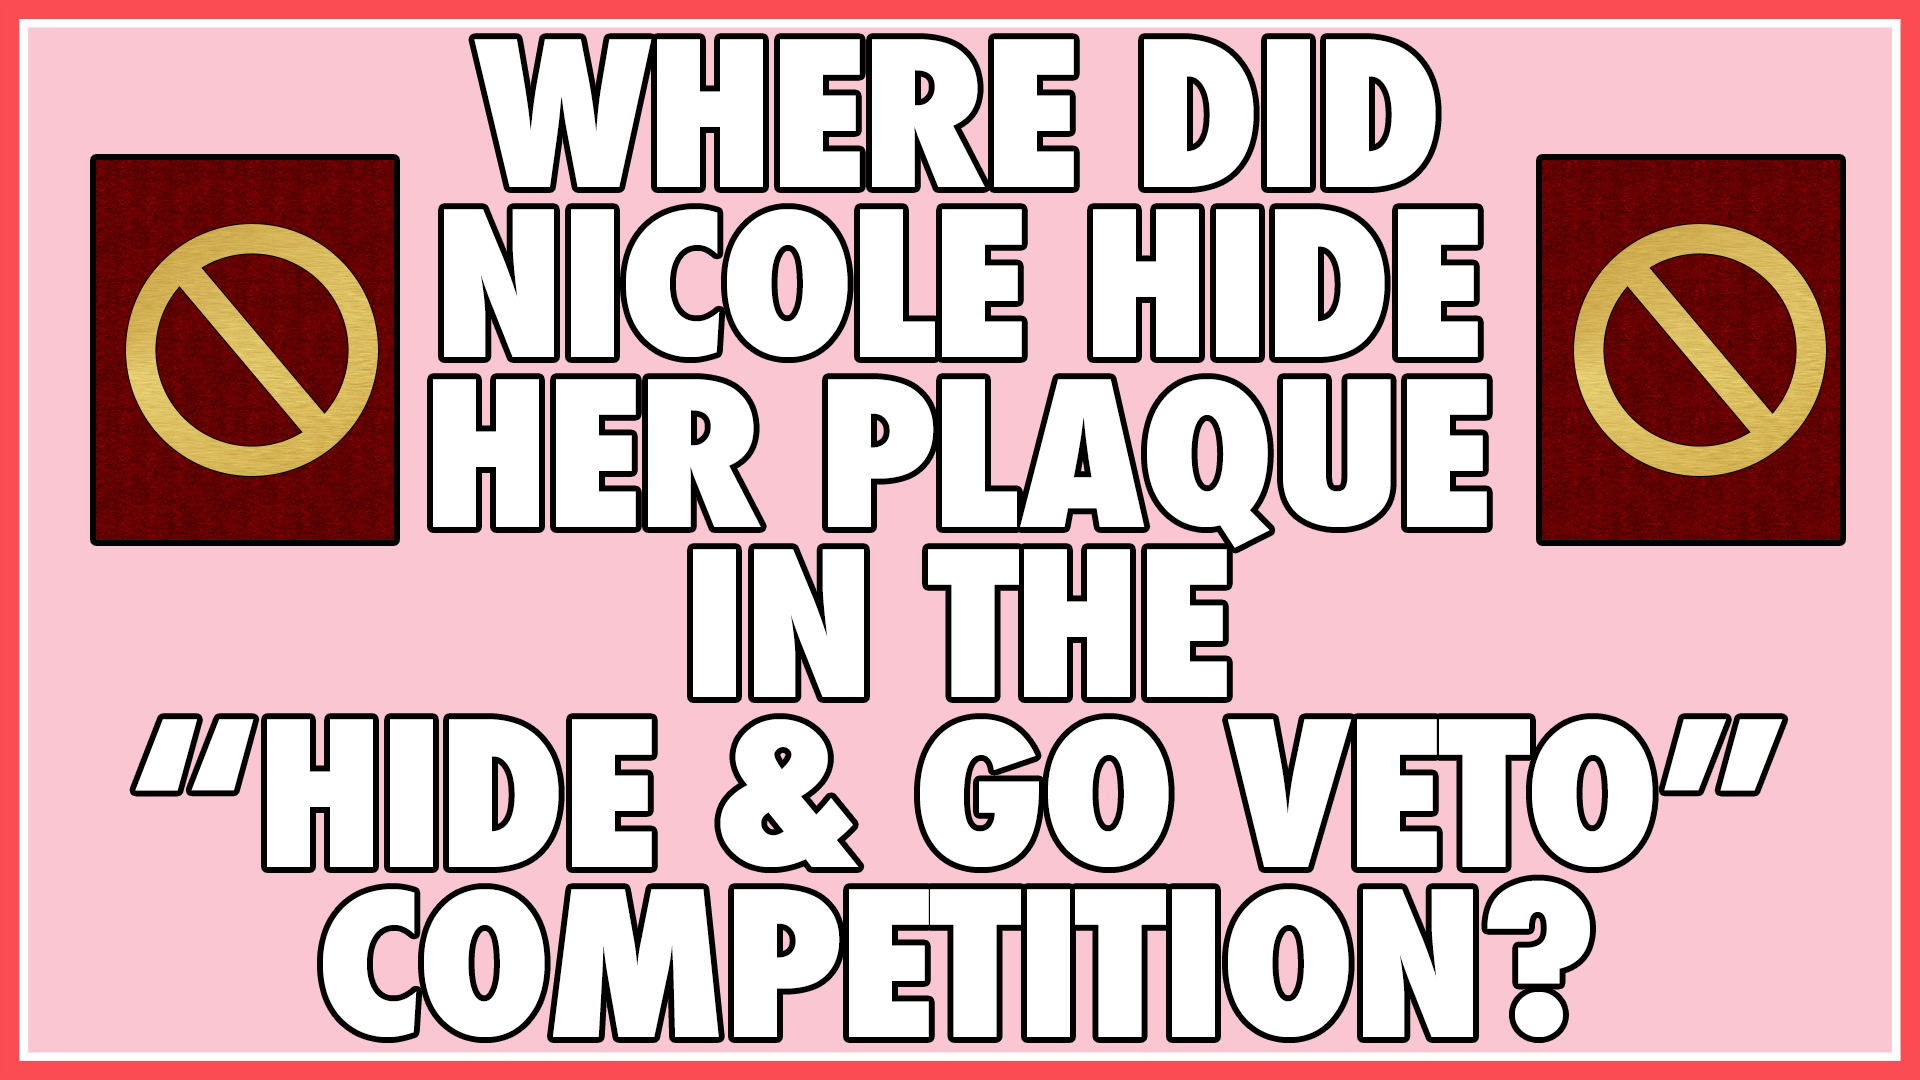 Where did Nicole hide her plaque in the